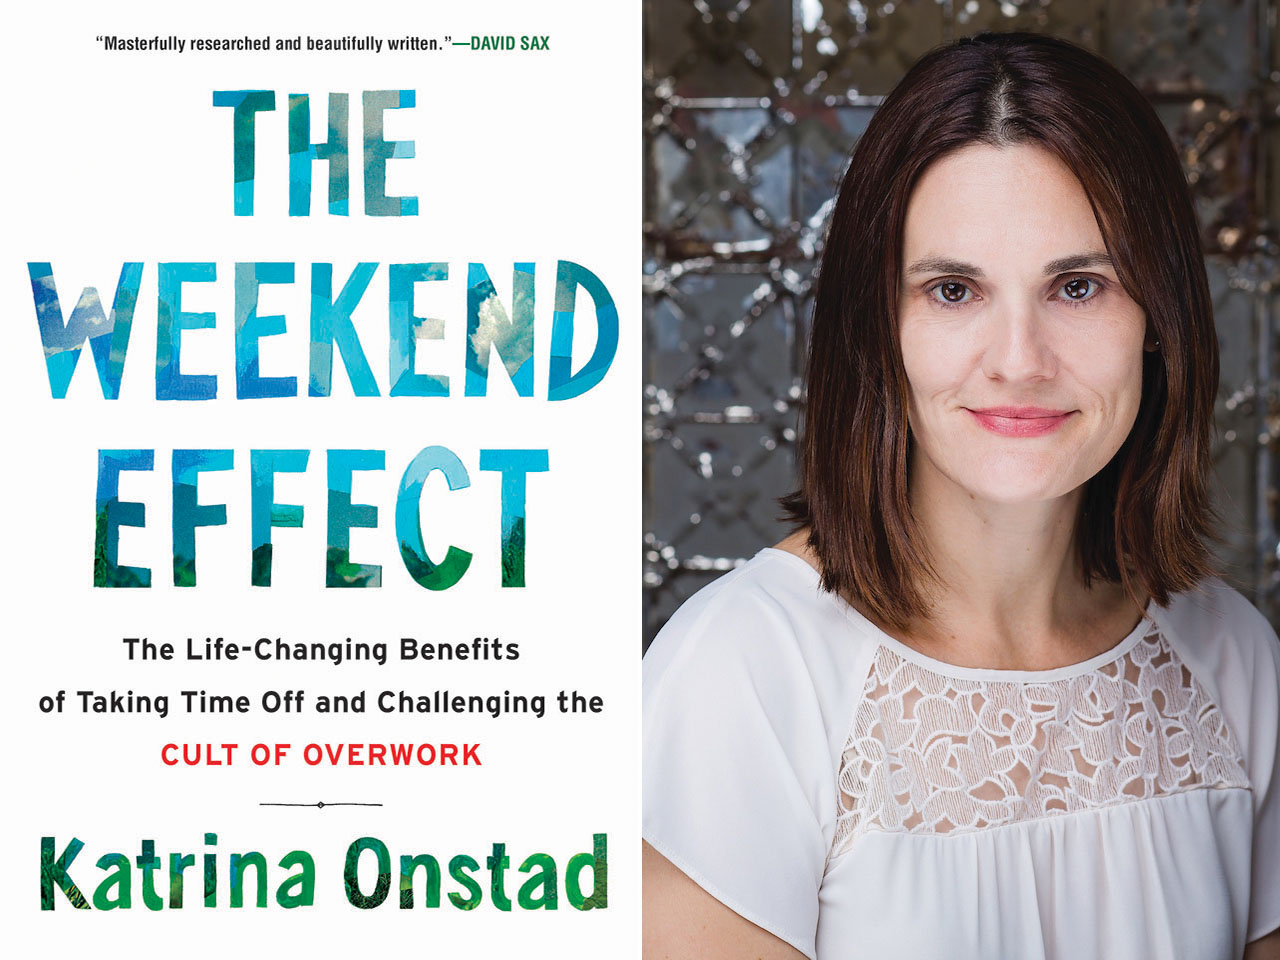 Katrina Onstad: The Weekend Effect excerpt for Chatelaine